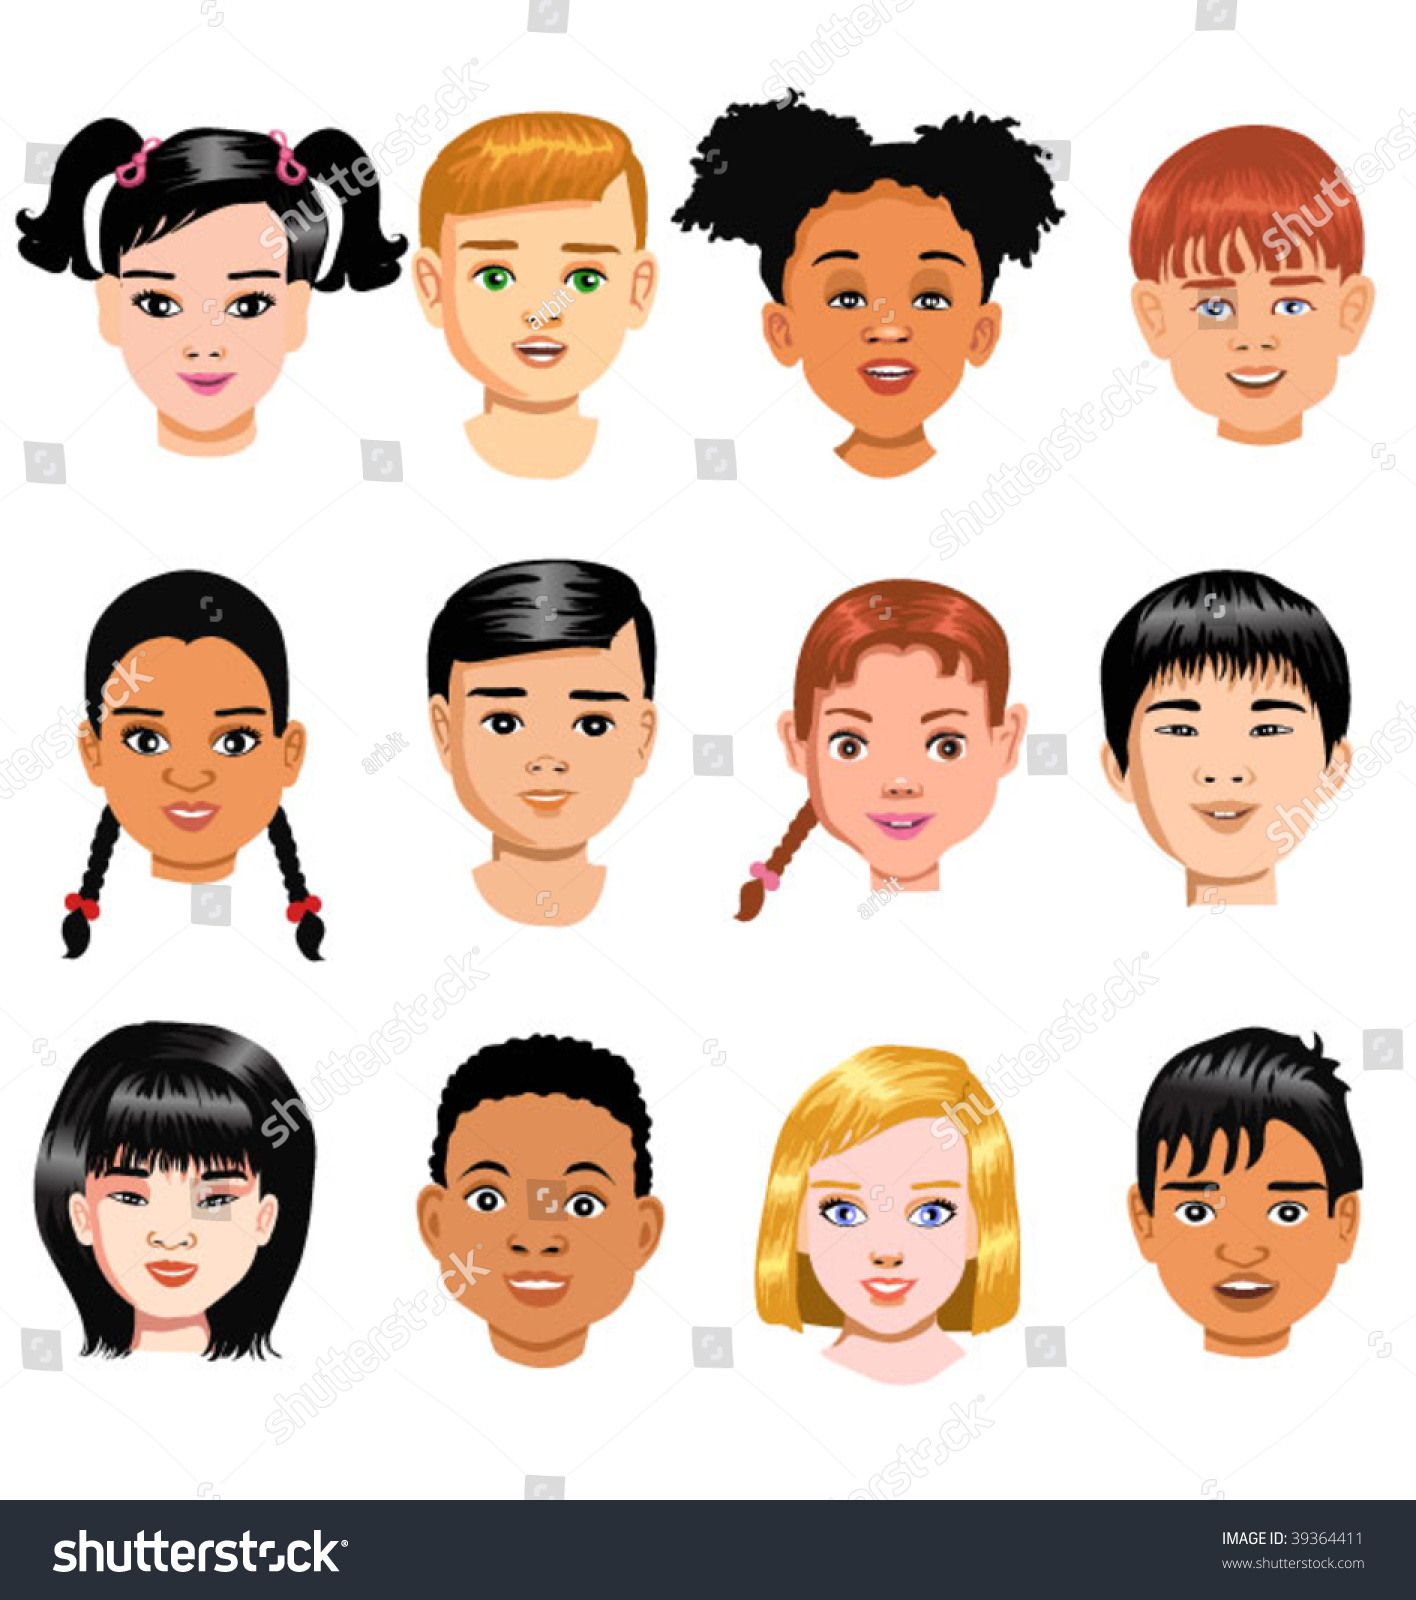 Children Of Different Races Stock Vector 39364411 : Shutterstock